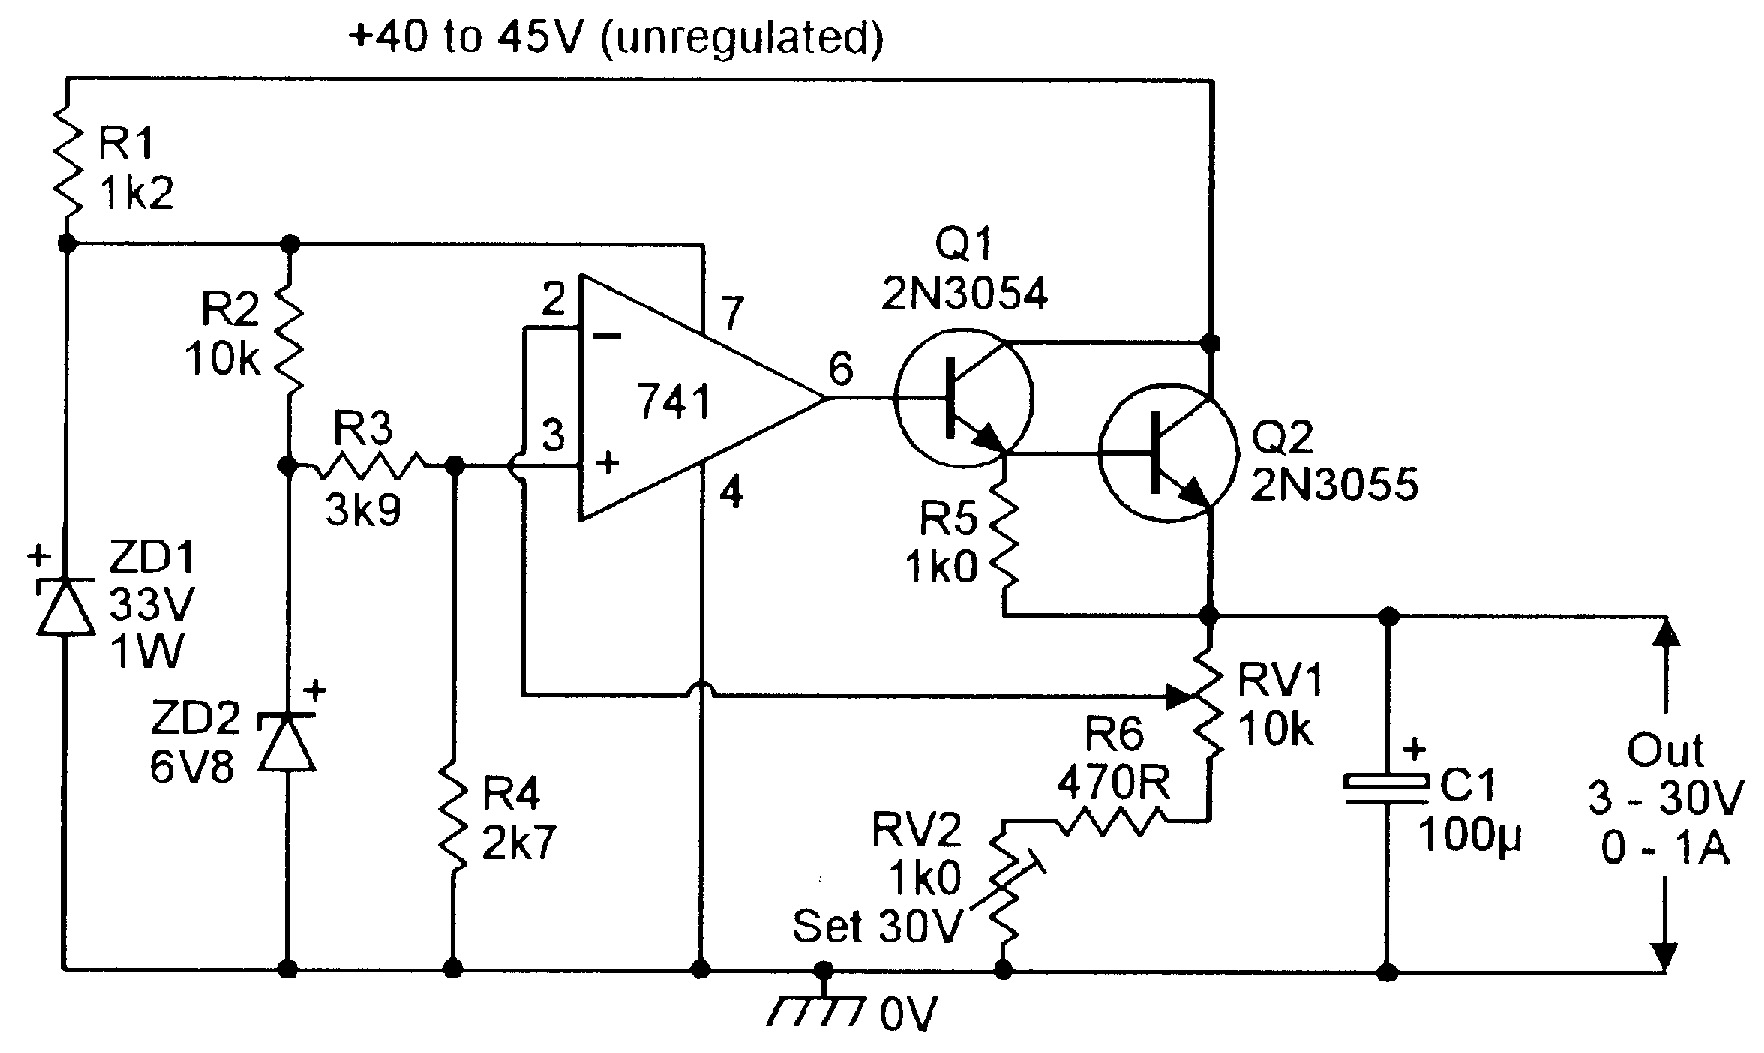 3V to 30V, 0 to 1 amp stabilized PSU.